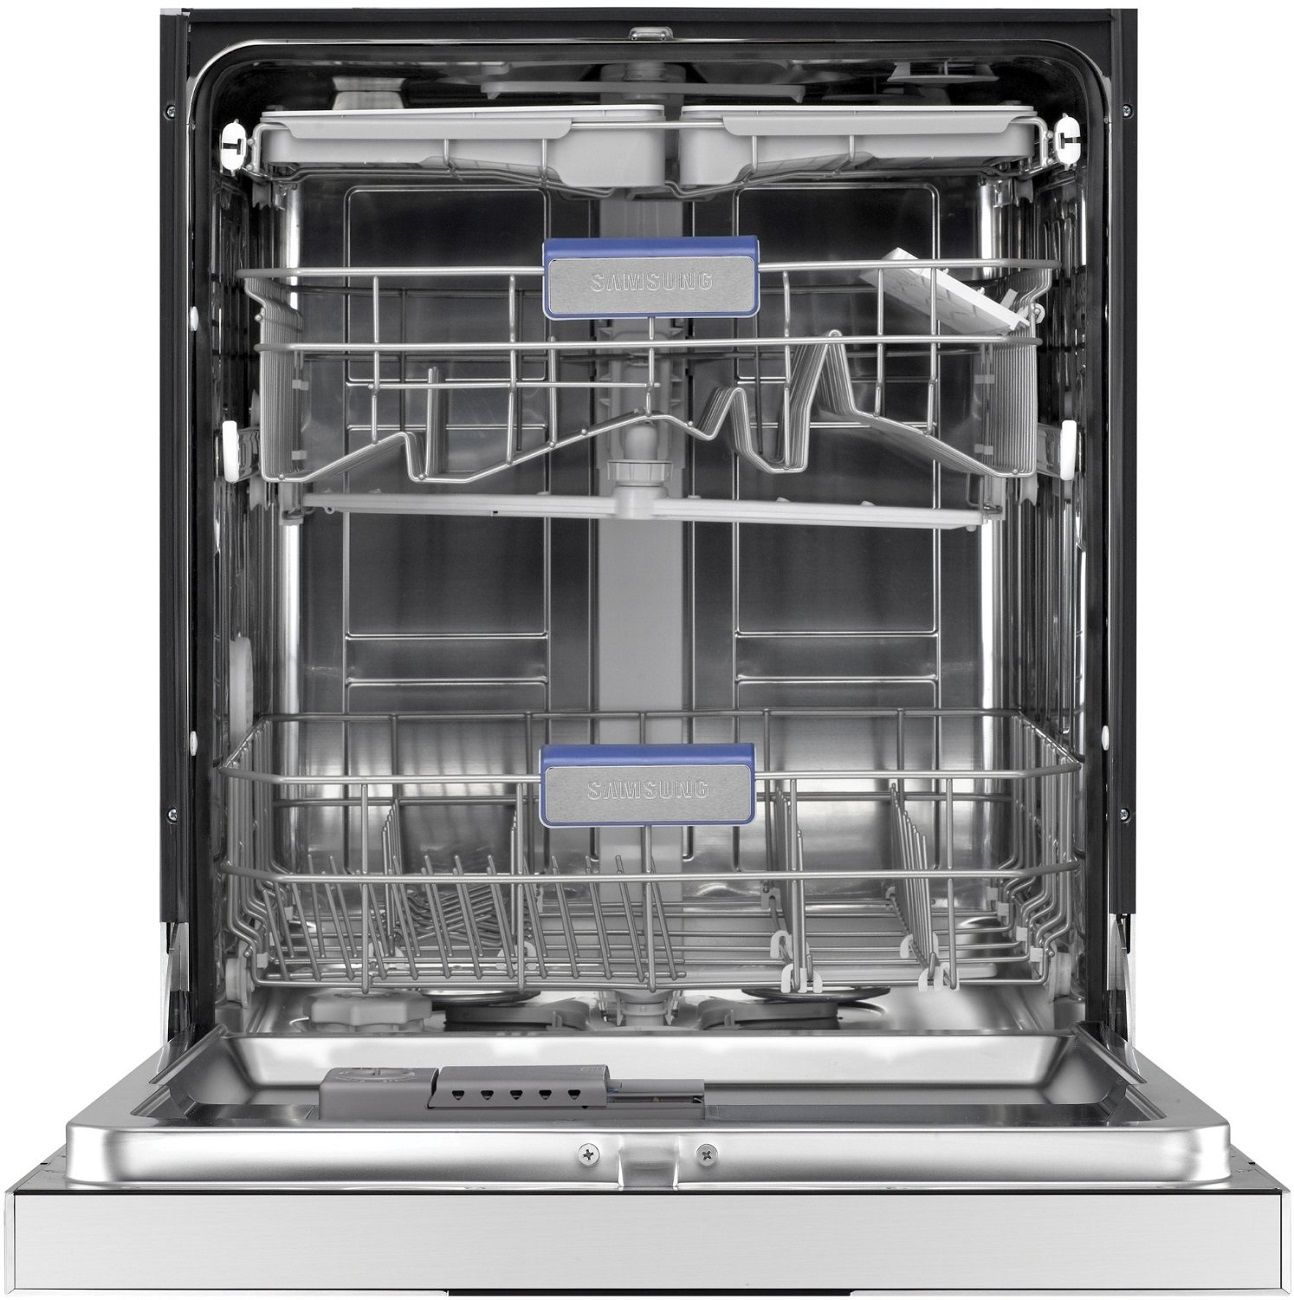 Samsung Dishwasher A Samsung dishwasher displays the